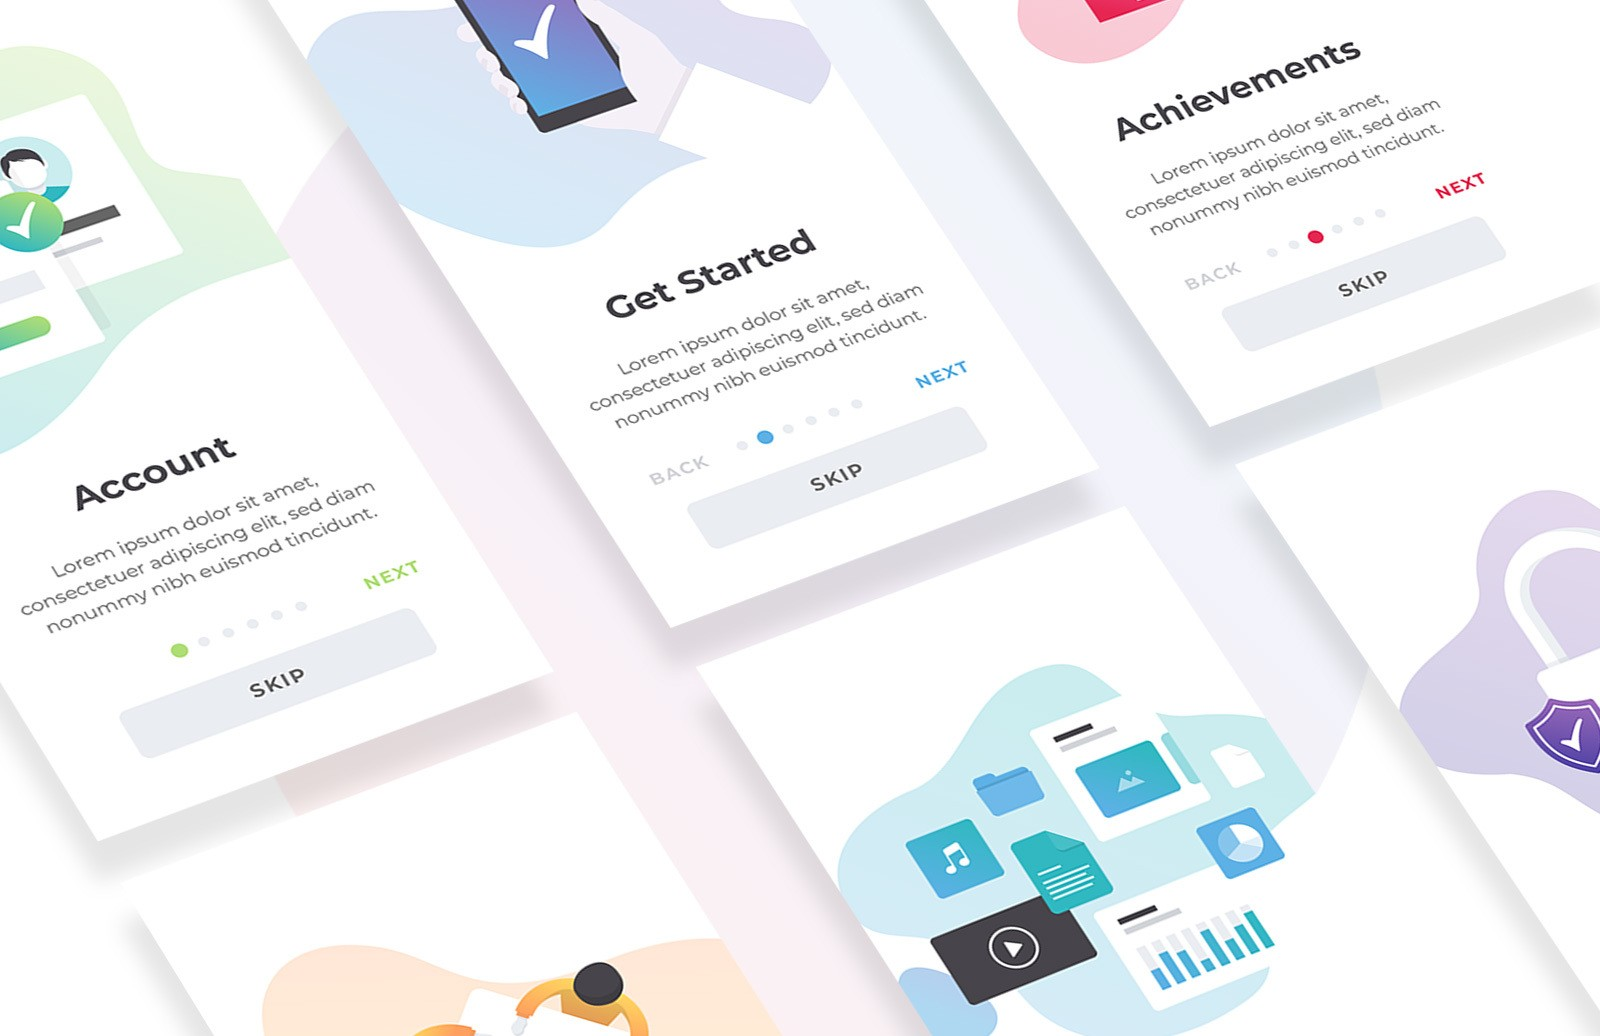 Mobile App Onboarding UI Screens